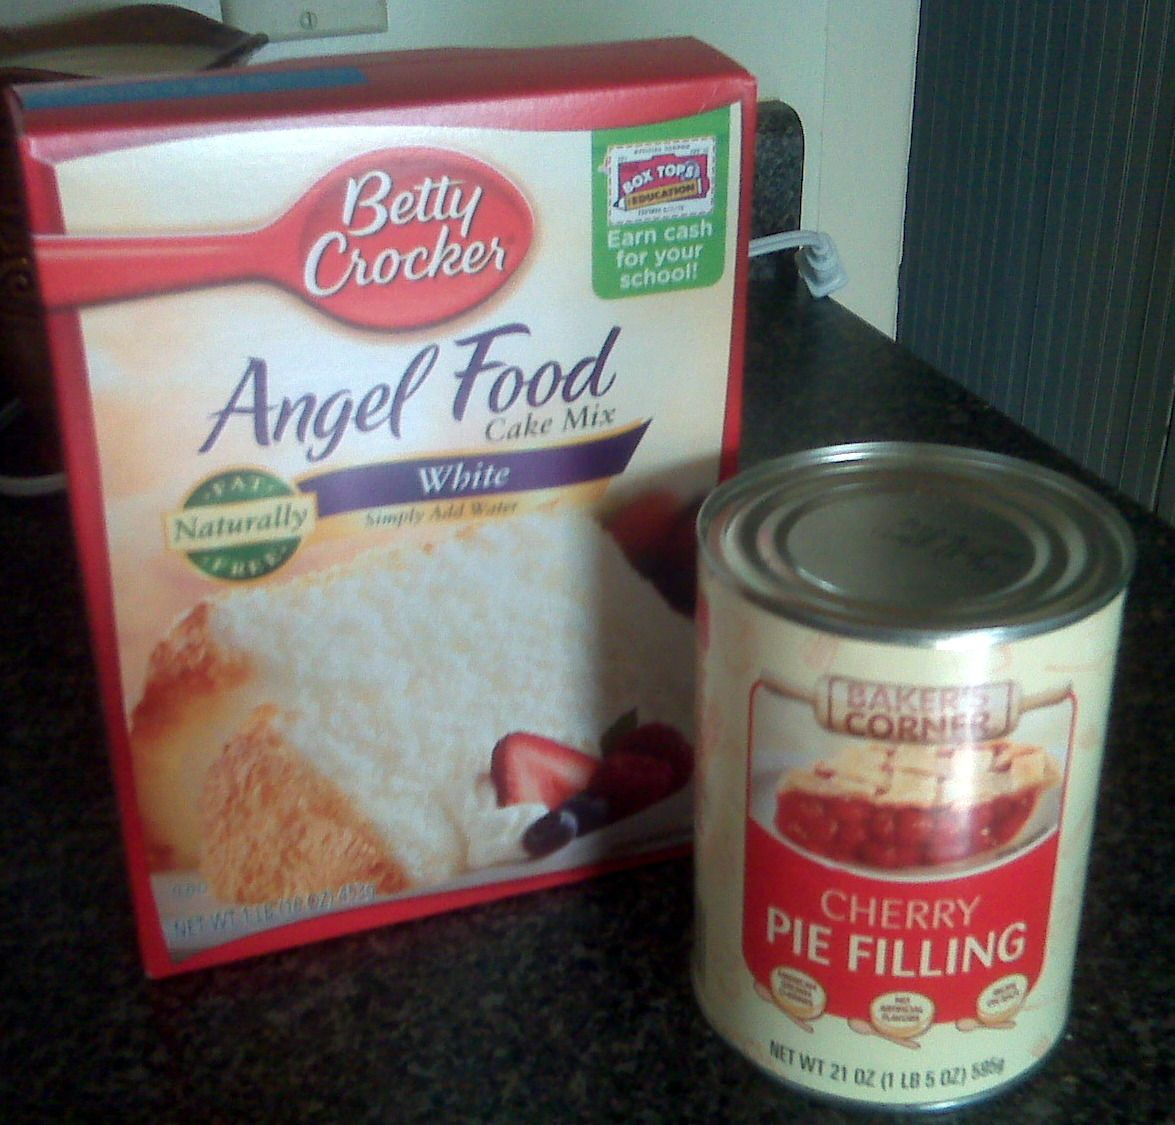 Delicious easy dessert book of angel food cake can of whatever cherry angel food cake 2 ingredients box of angel food cake can of whatever pie filling you like to make it 2 pt weight watcher bars use lite pie forumfinder Gallery